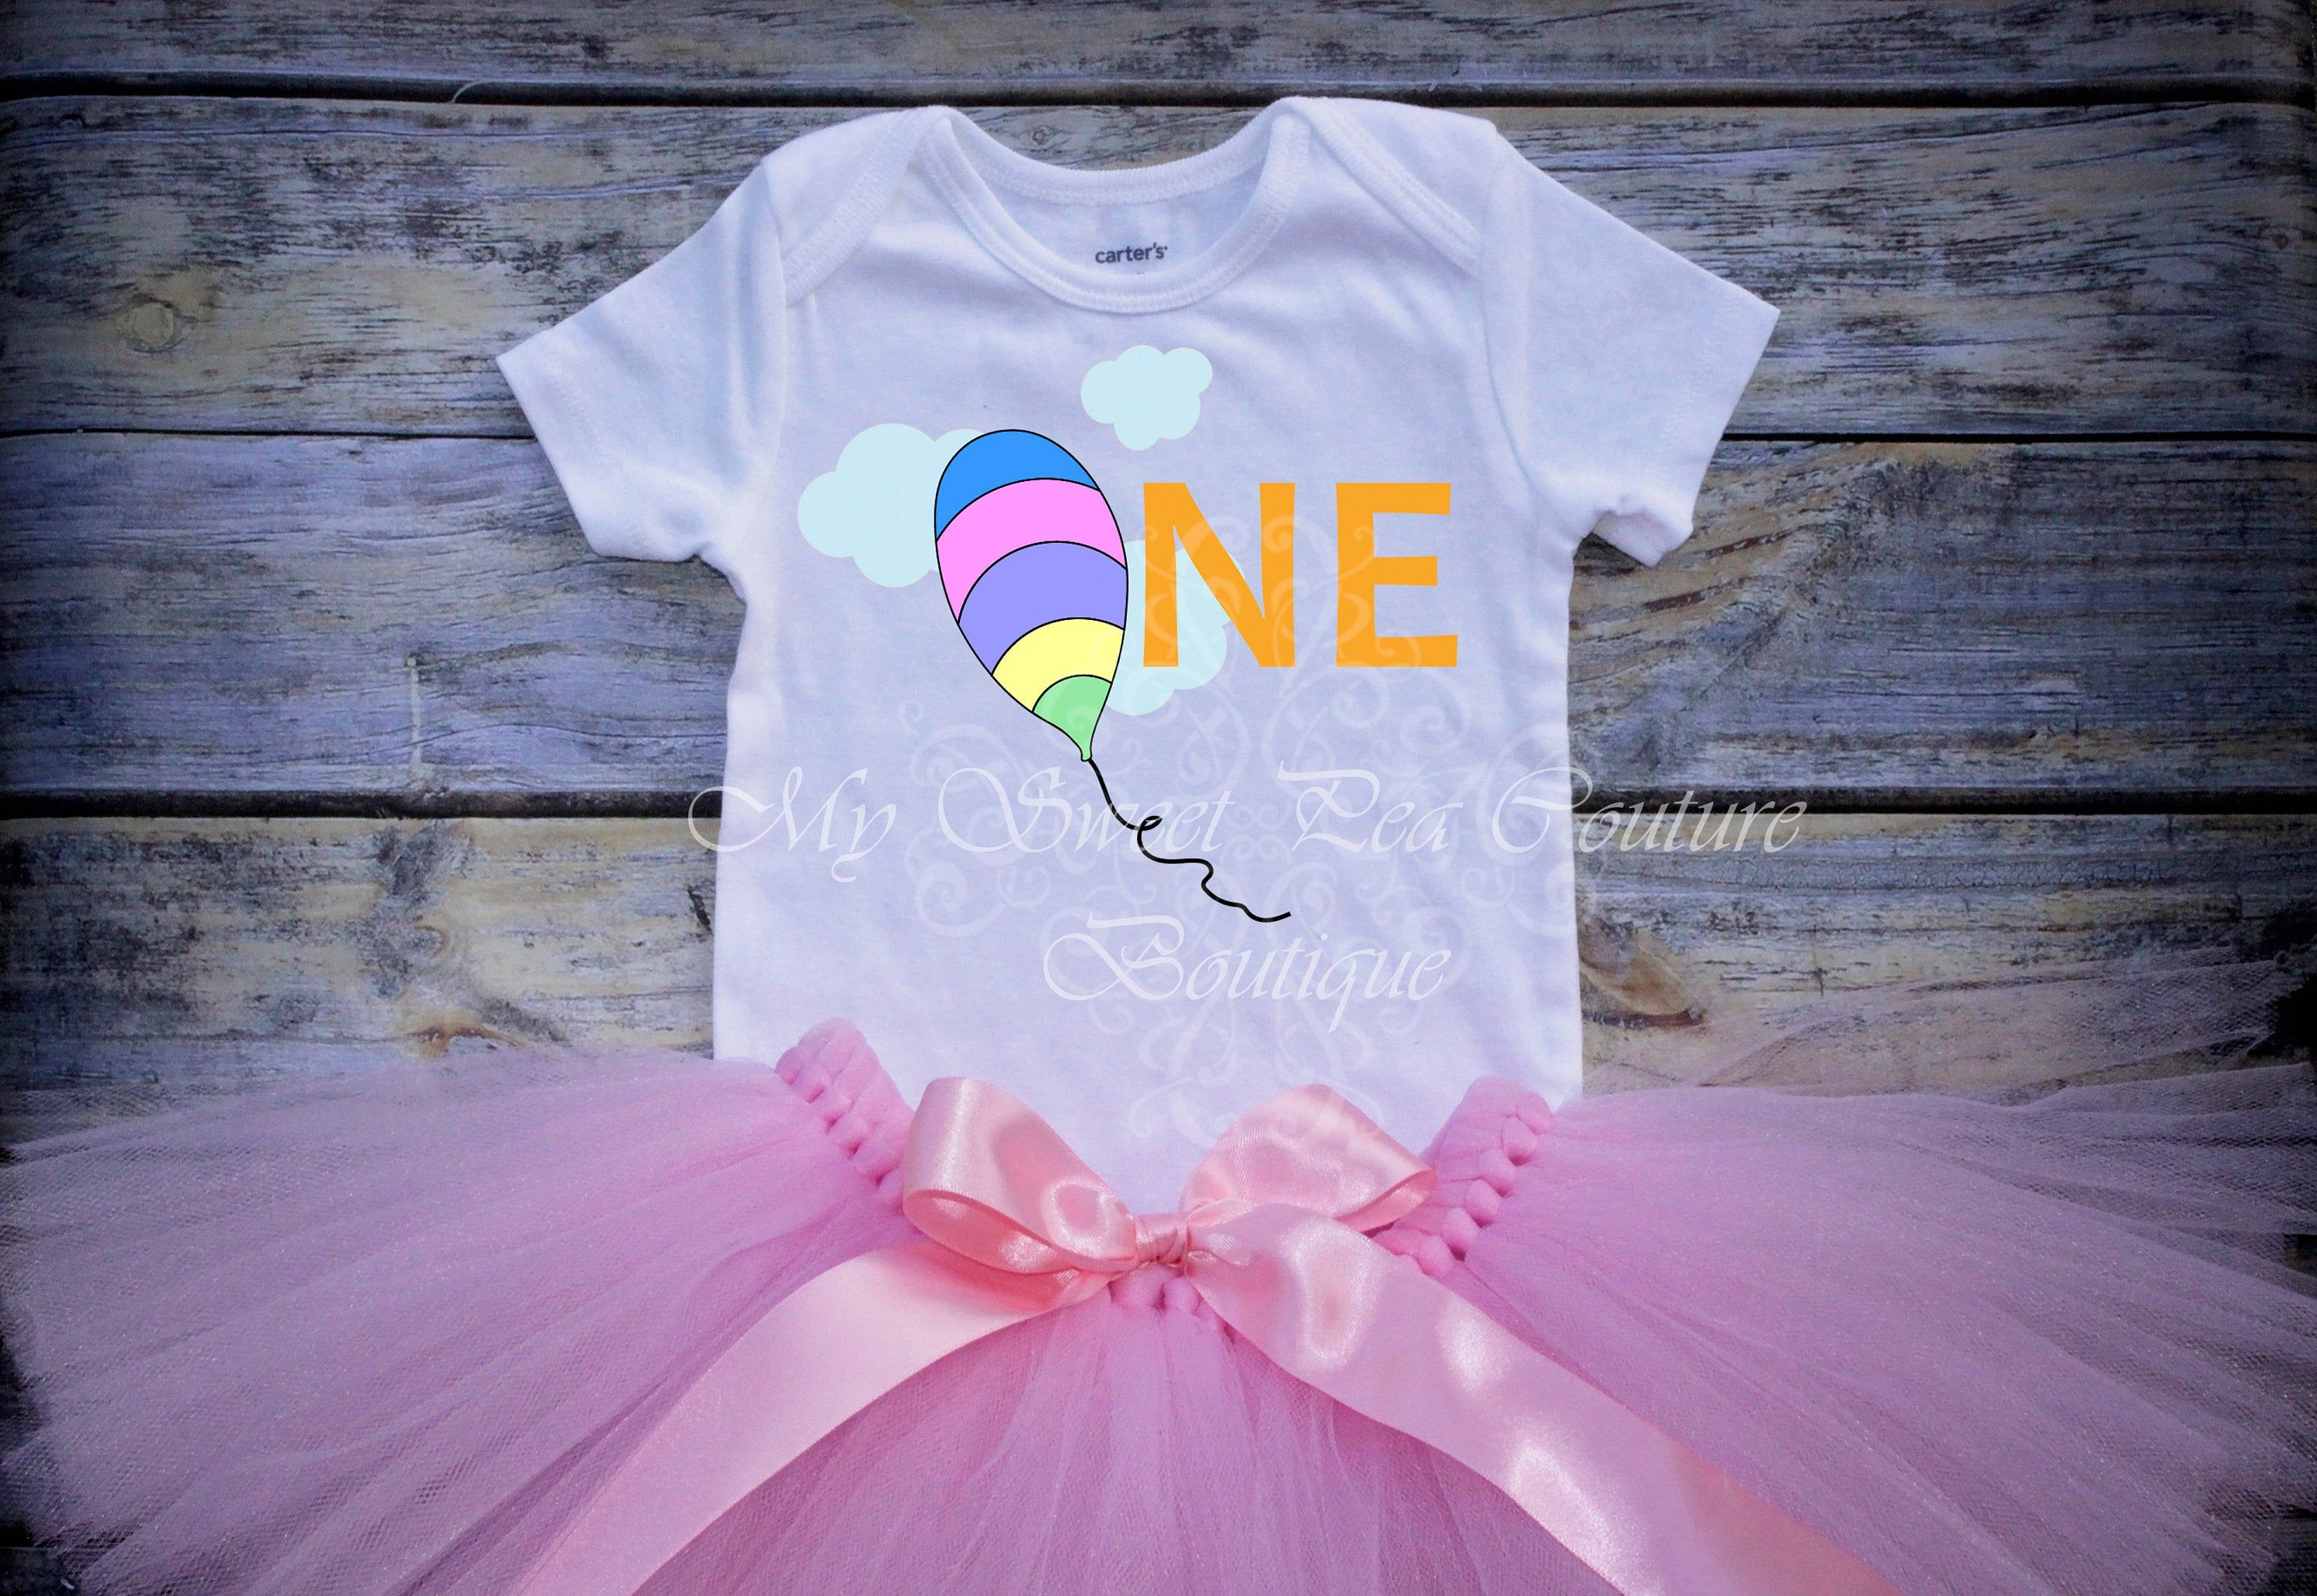 Cake Smash Outfit First Birthday Outfit One Hot Air Balloon First Birthday Oh the Places You/'ll Go First Birthday Outfit 1st Birthday